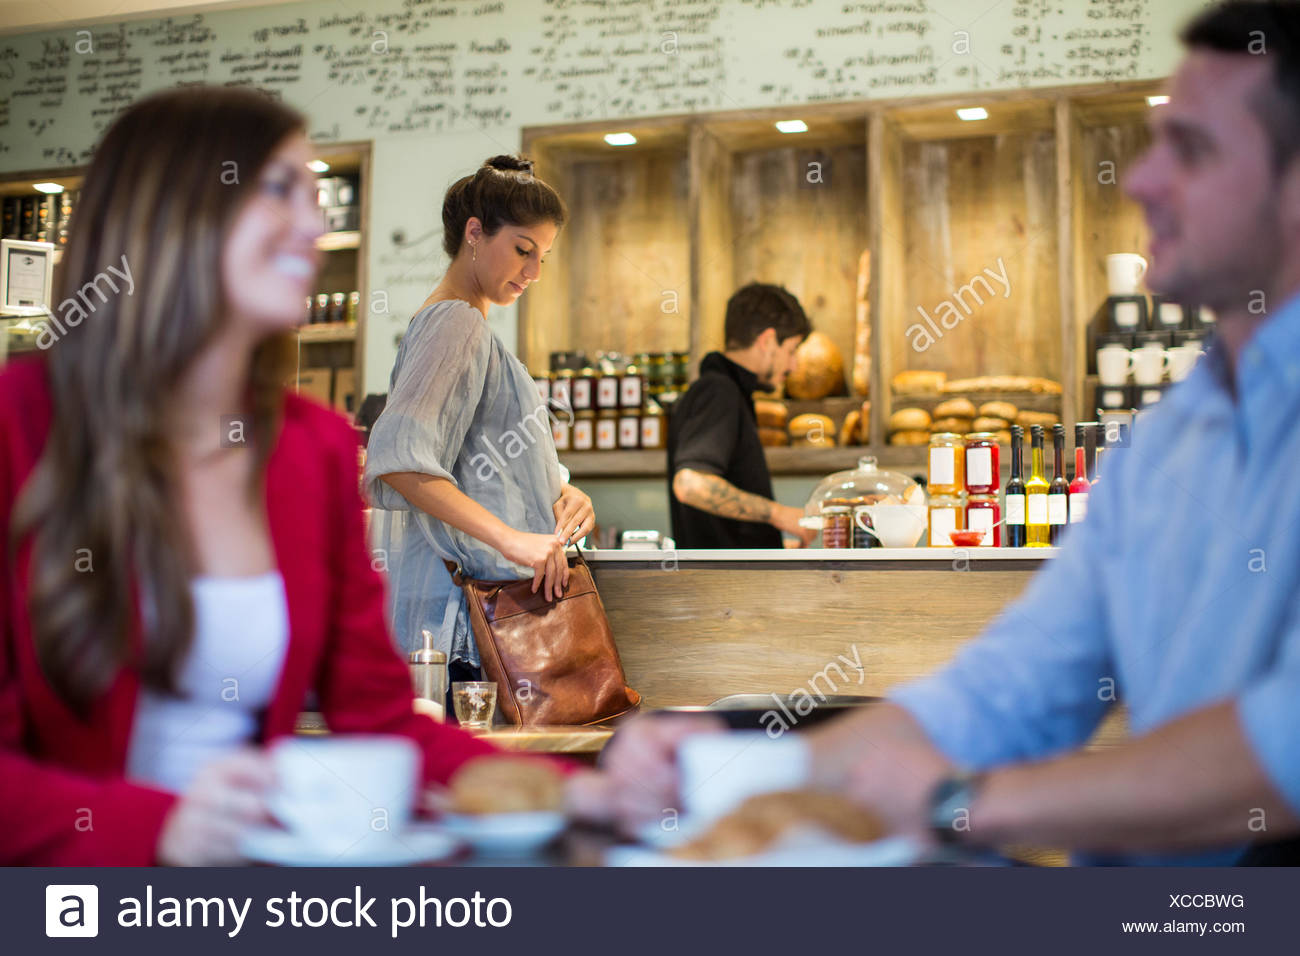 Couple talking in busy cafe - Stock Image